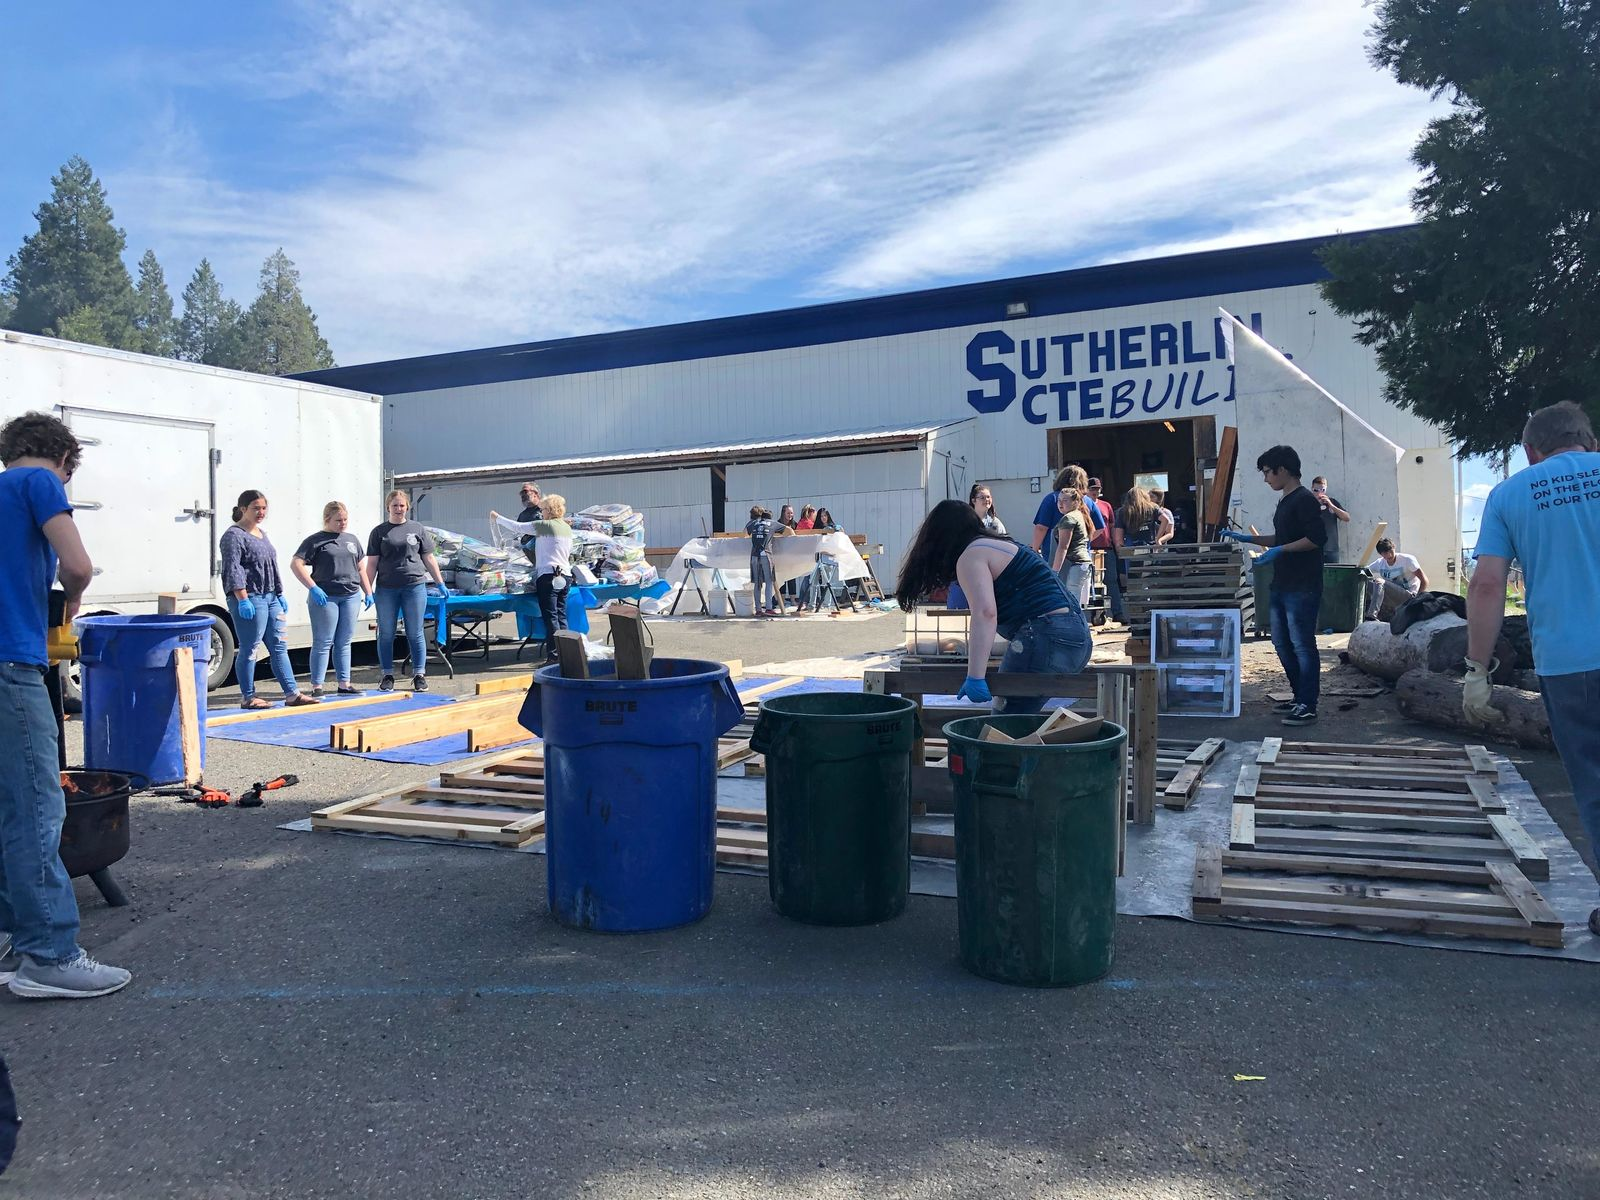 Sutherlin students roll up their sleeves to give kids a better night's sleep (SBG)